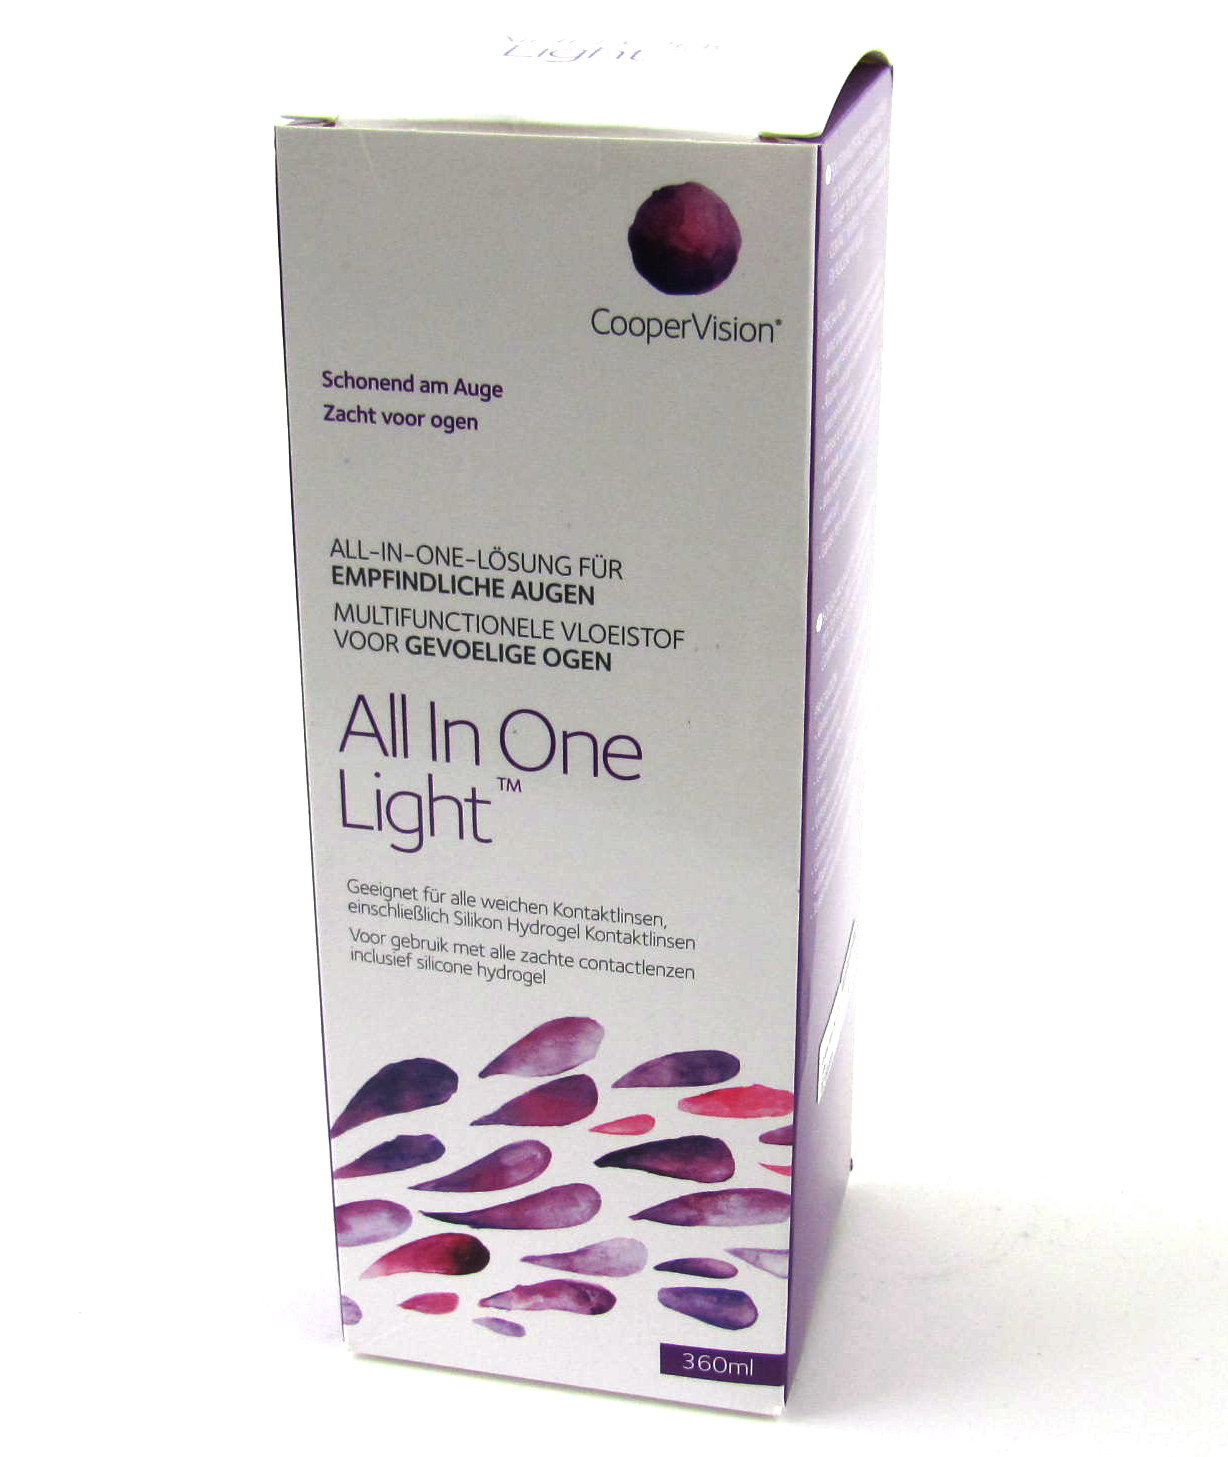 All in One Light Kombilösung 360ml